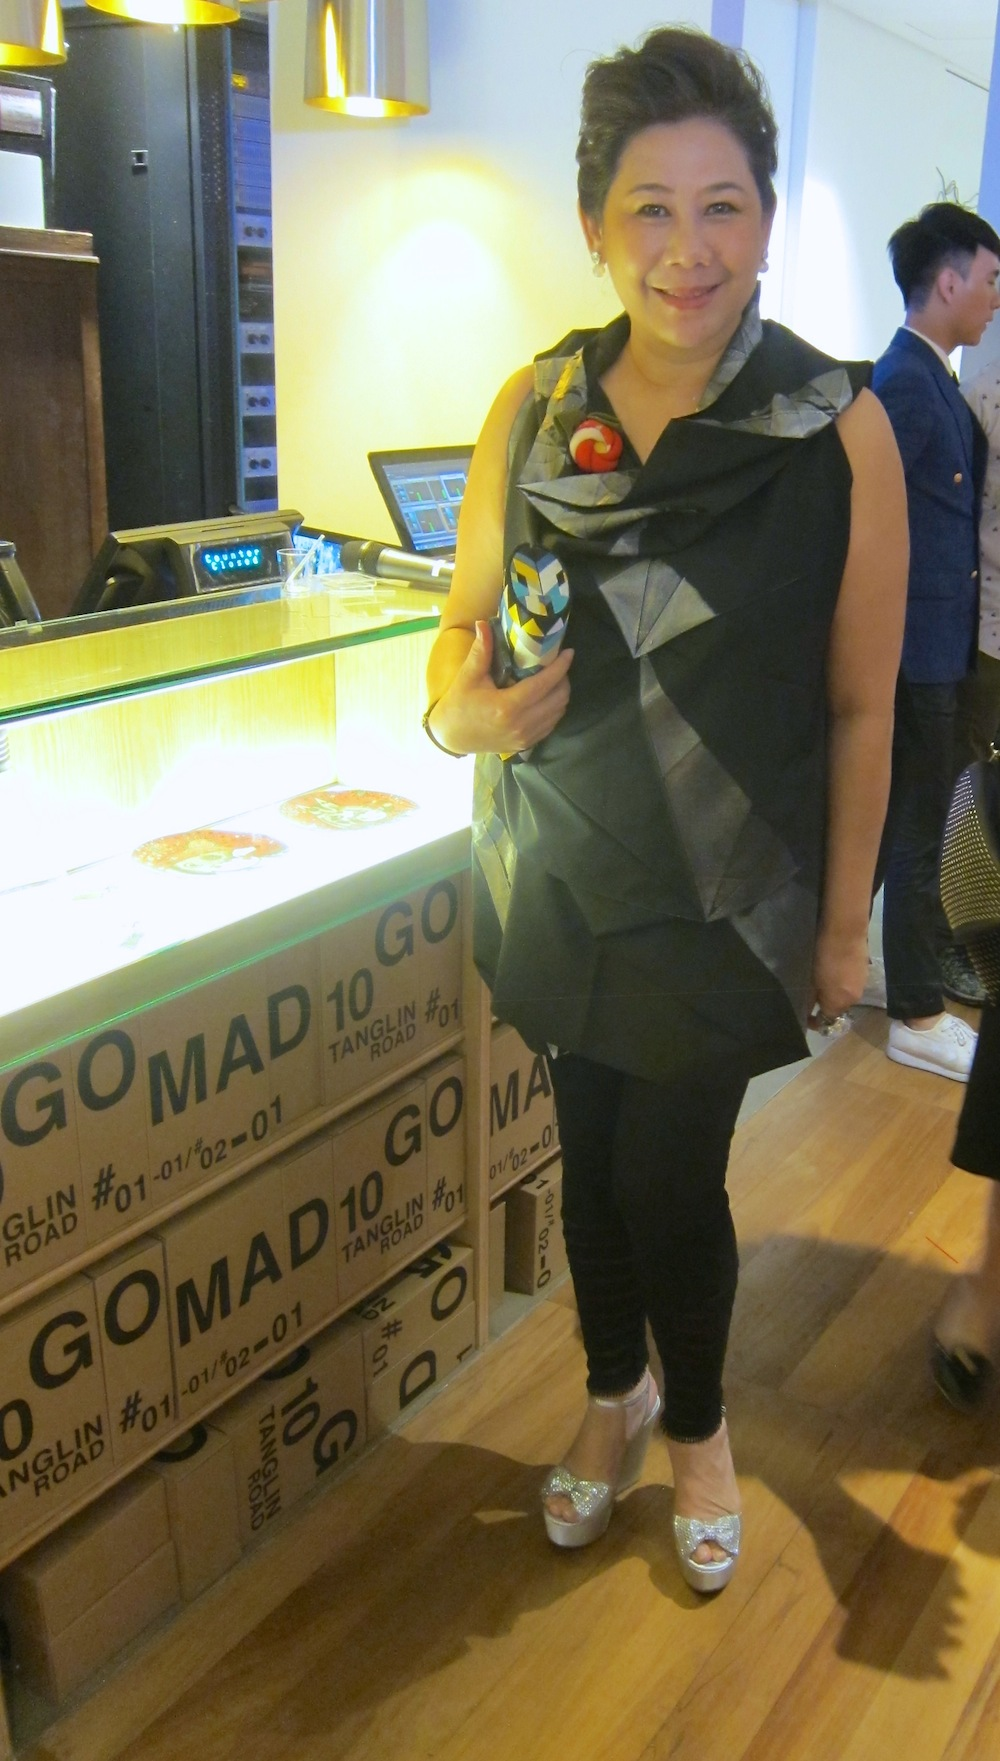 Lady in Origami top at MAD museum|curlytraveller.com